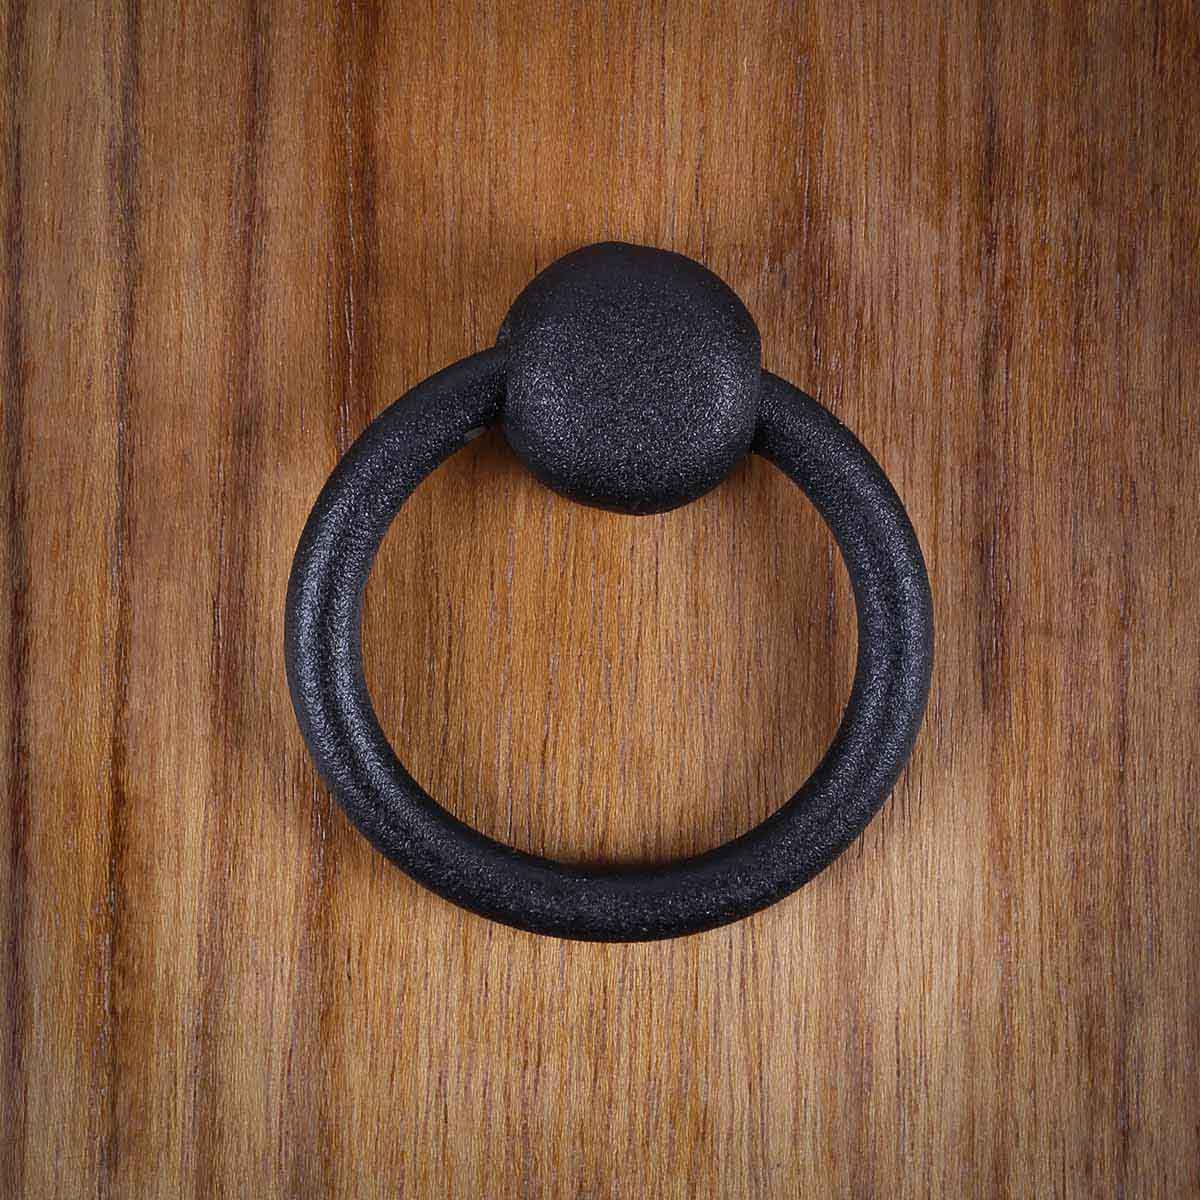 Cabinet Ring Pulls Mission Black Wrought Iron Ring Pulls Cabinet Hardware Cabinet Door Ring Pulls Wrought Iron Door Pulls